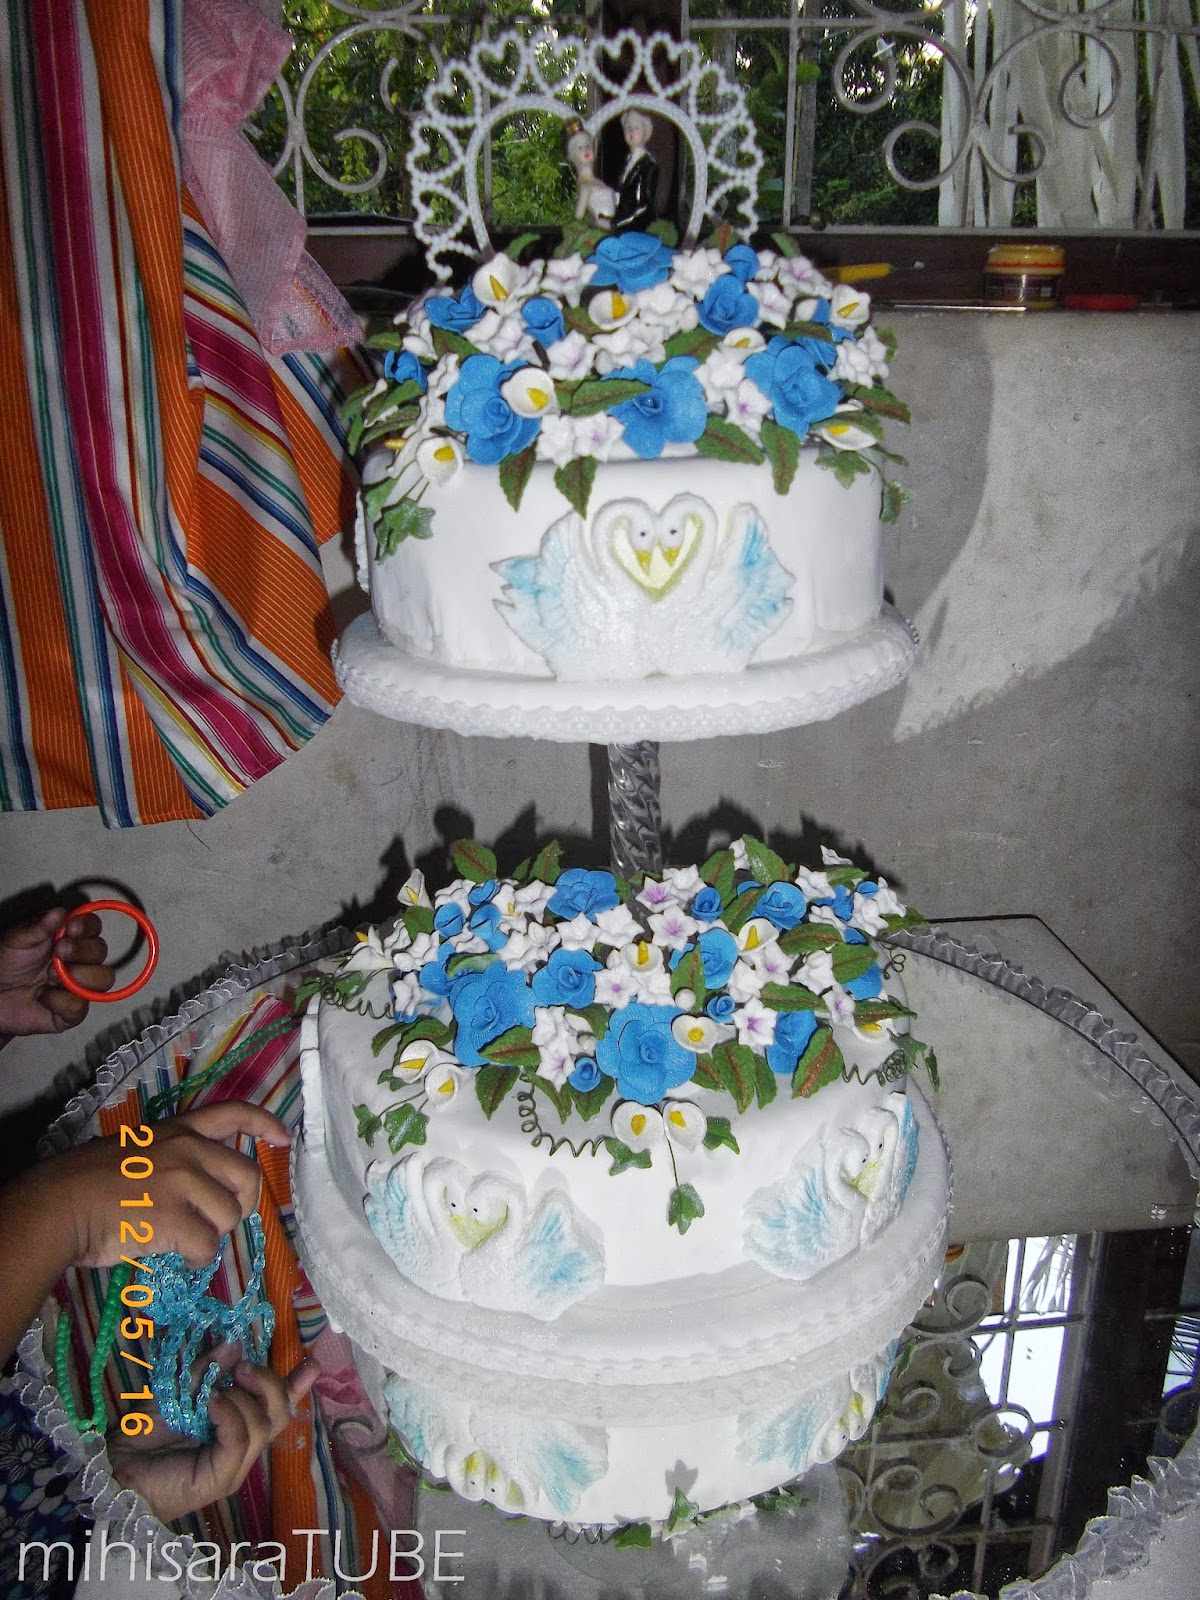 Sri Lankan wedding cake structures